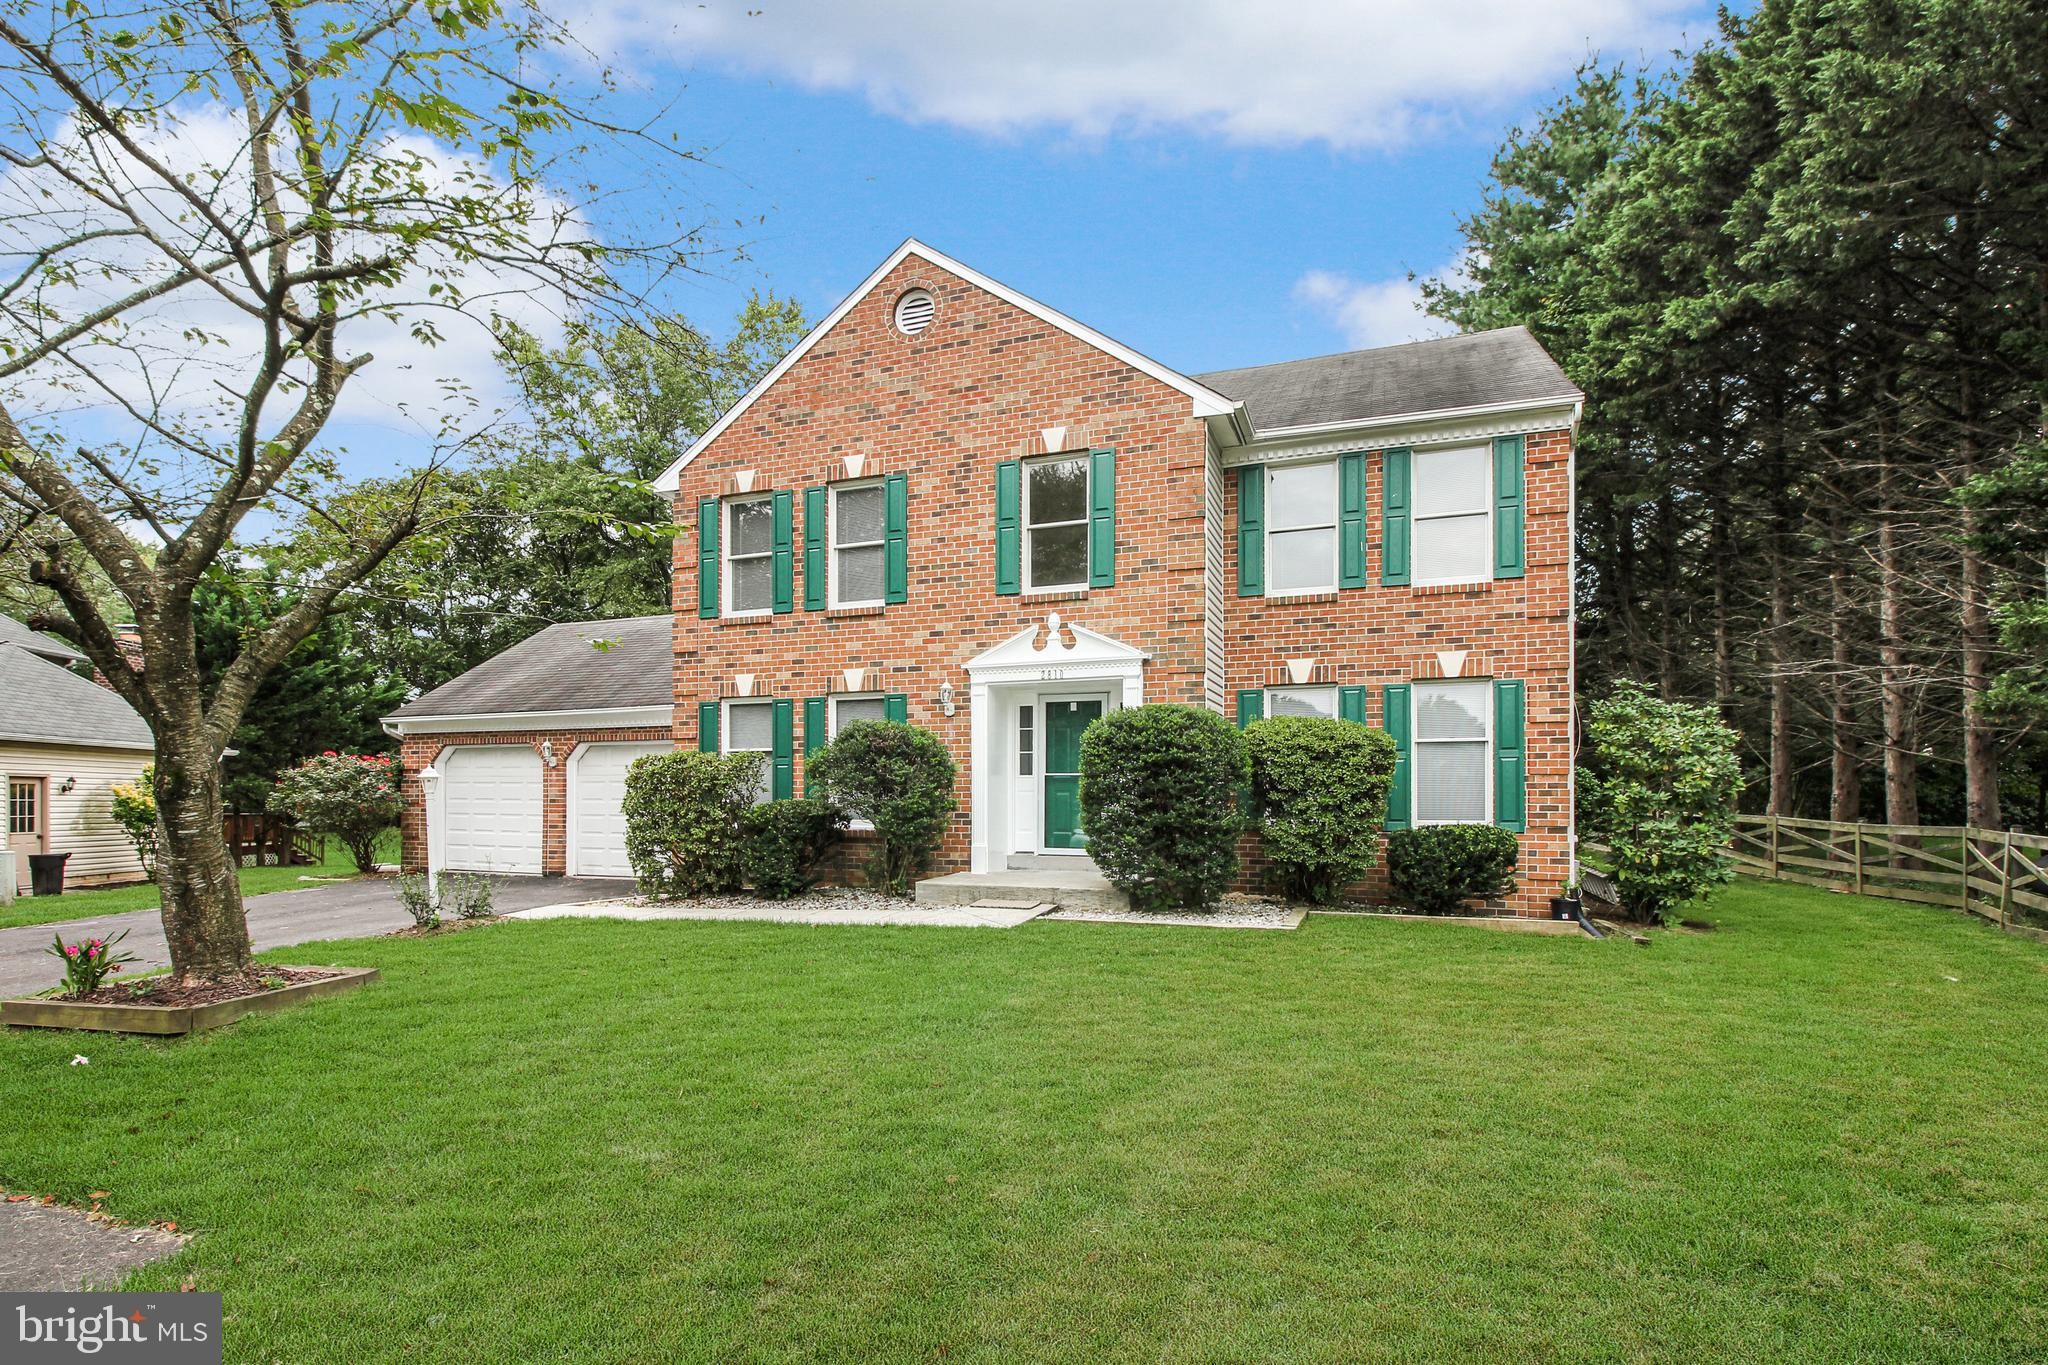 Immerse in the comfort and beauty of your new home!!! This beautiful brick front Colonial on 1/2 acr